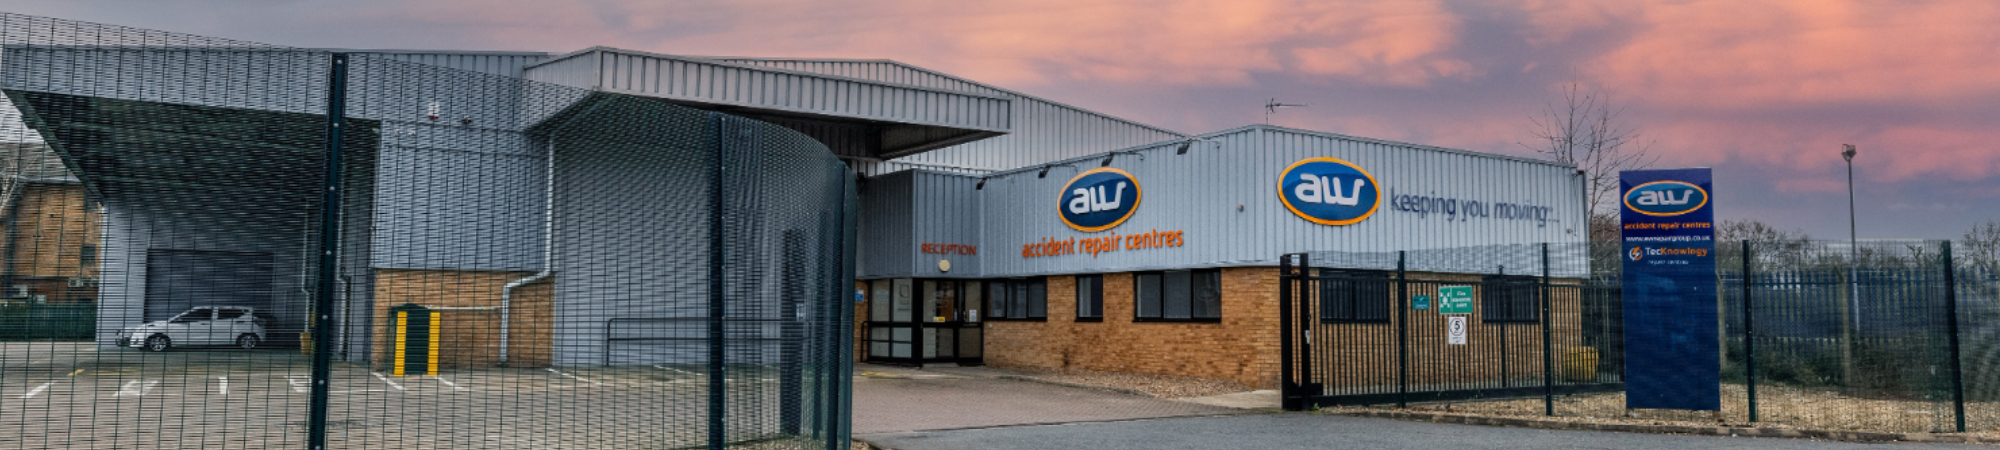 AW Announce Opening of 11th Site in Lincoln